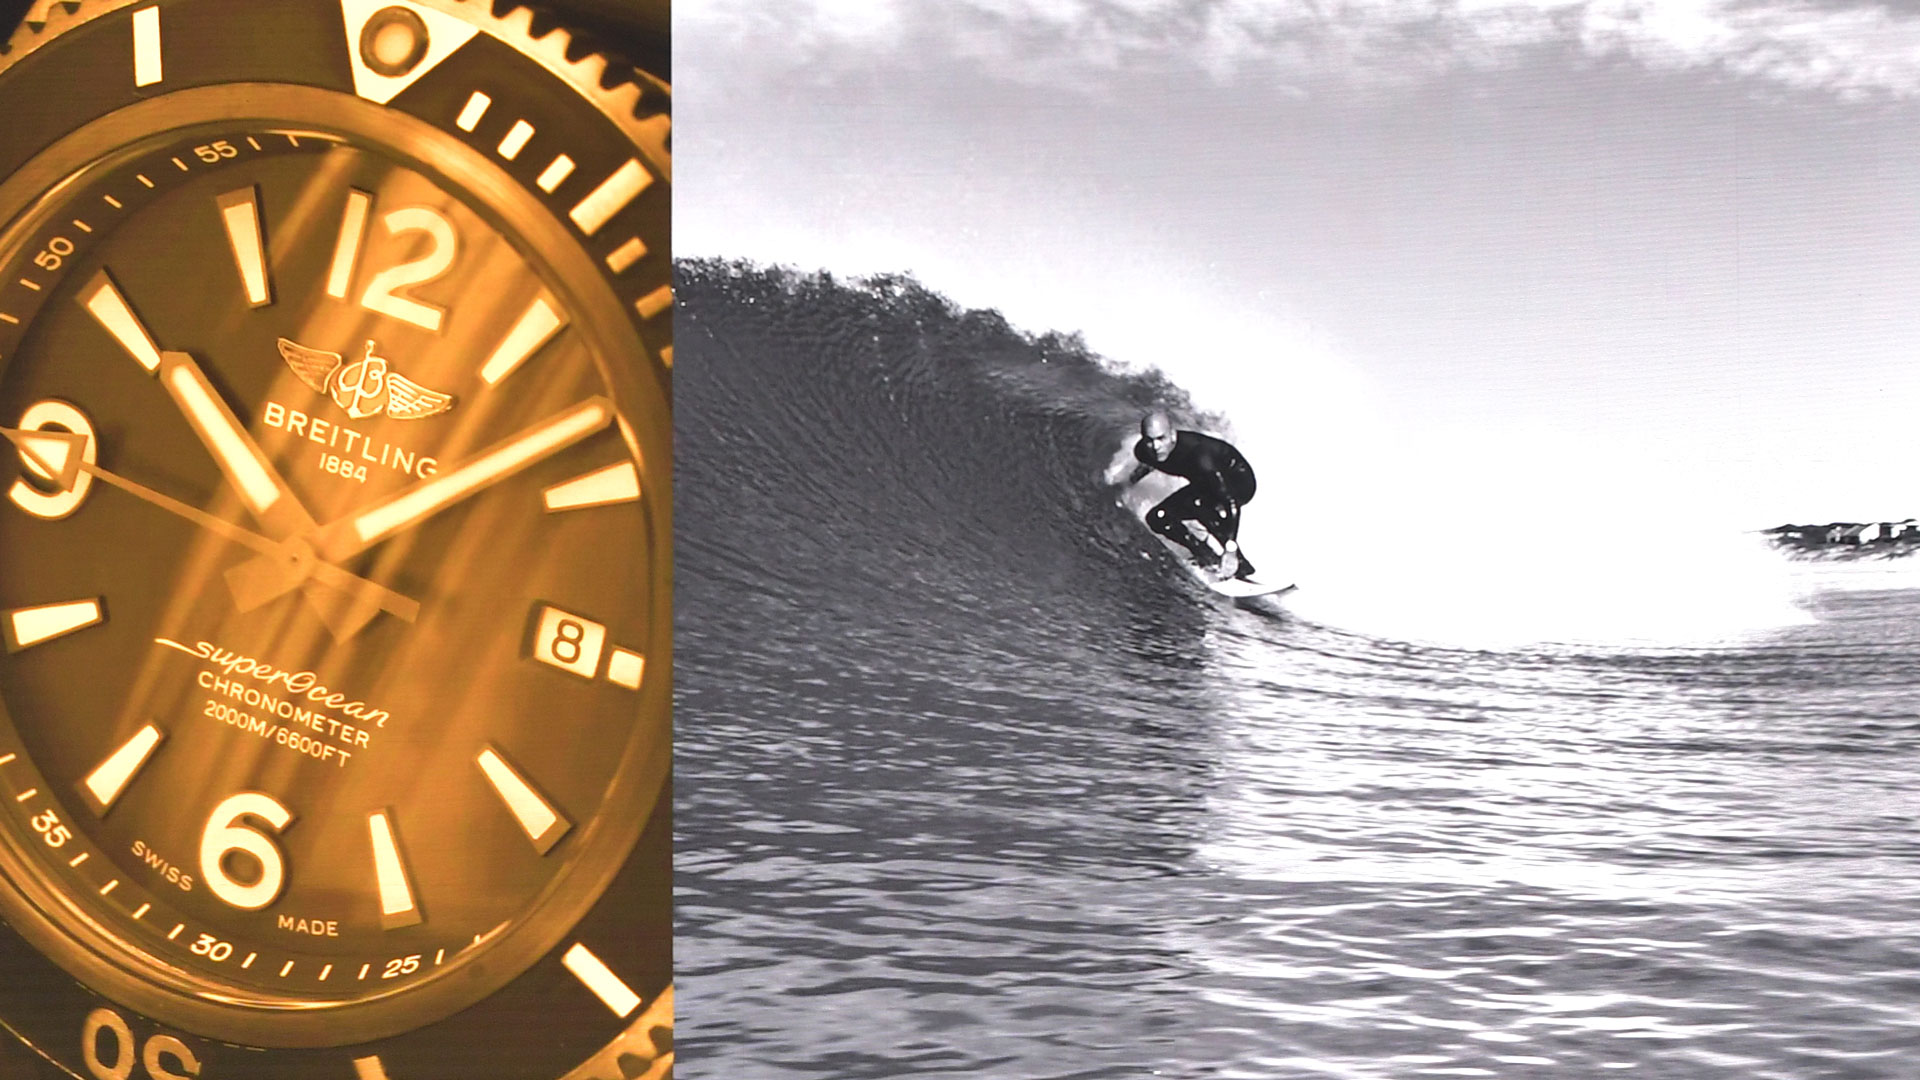 Breitling watch close-up and surfer in waves